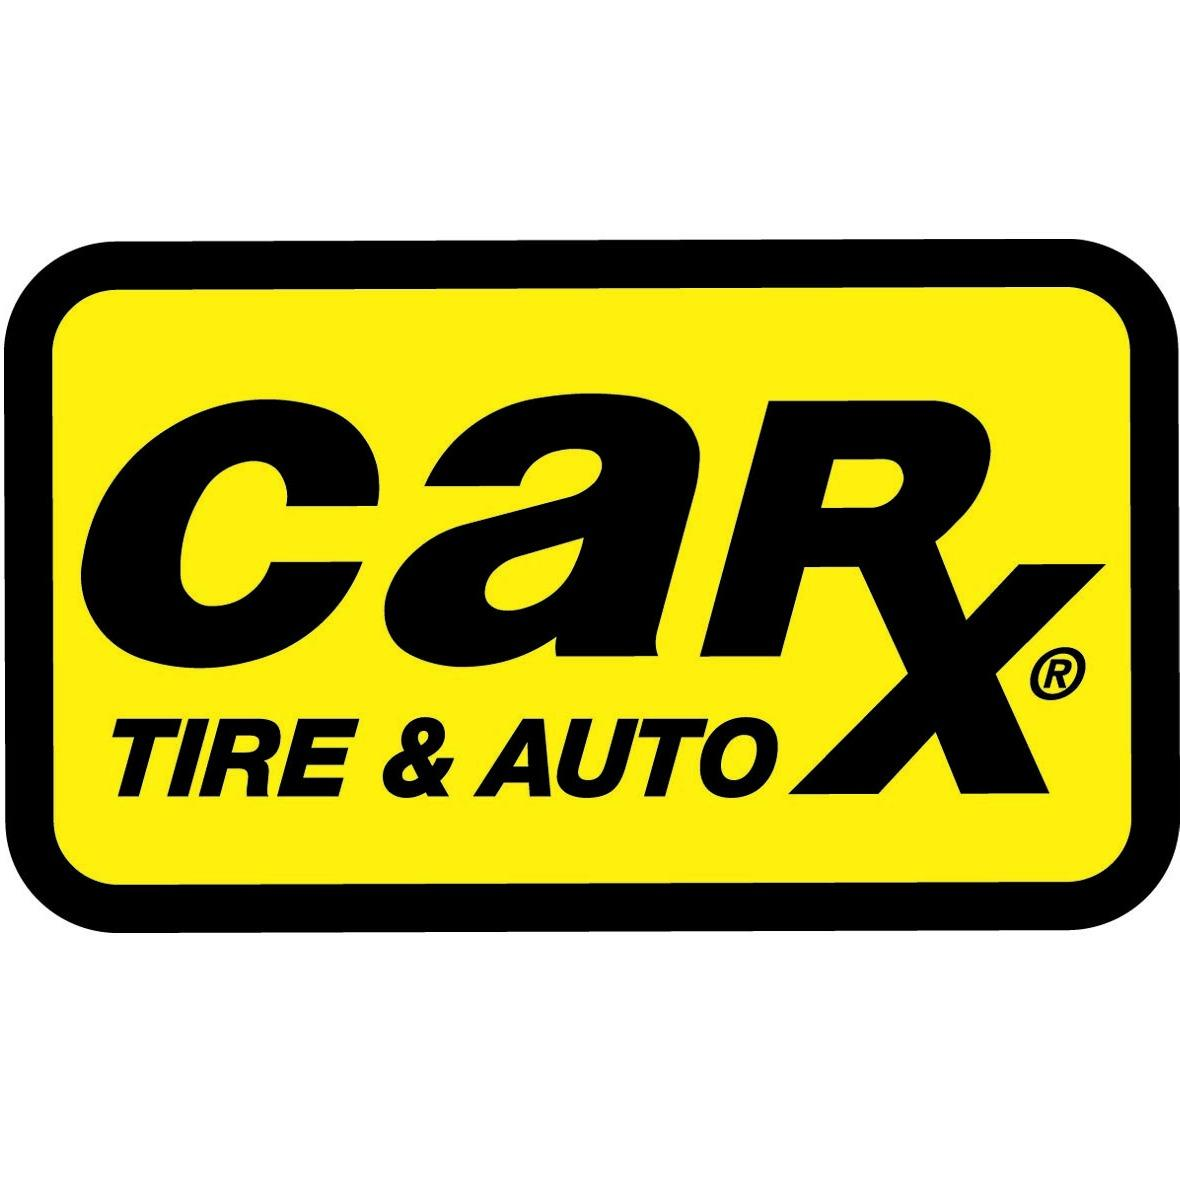 Car-X Tire & Auto image 4